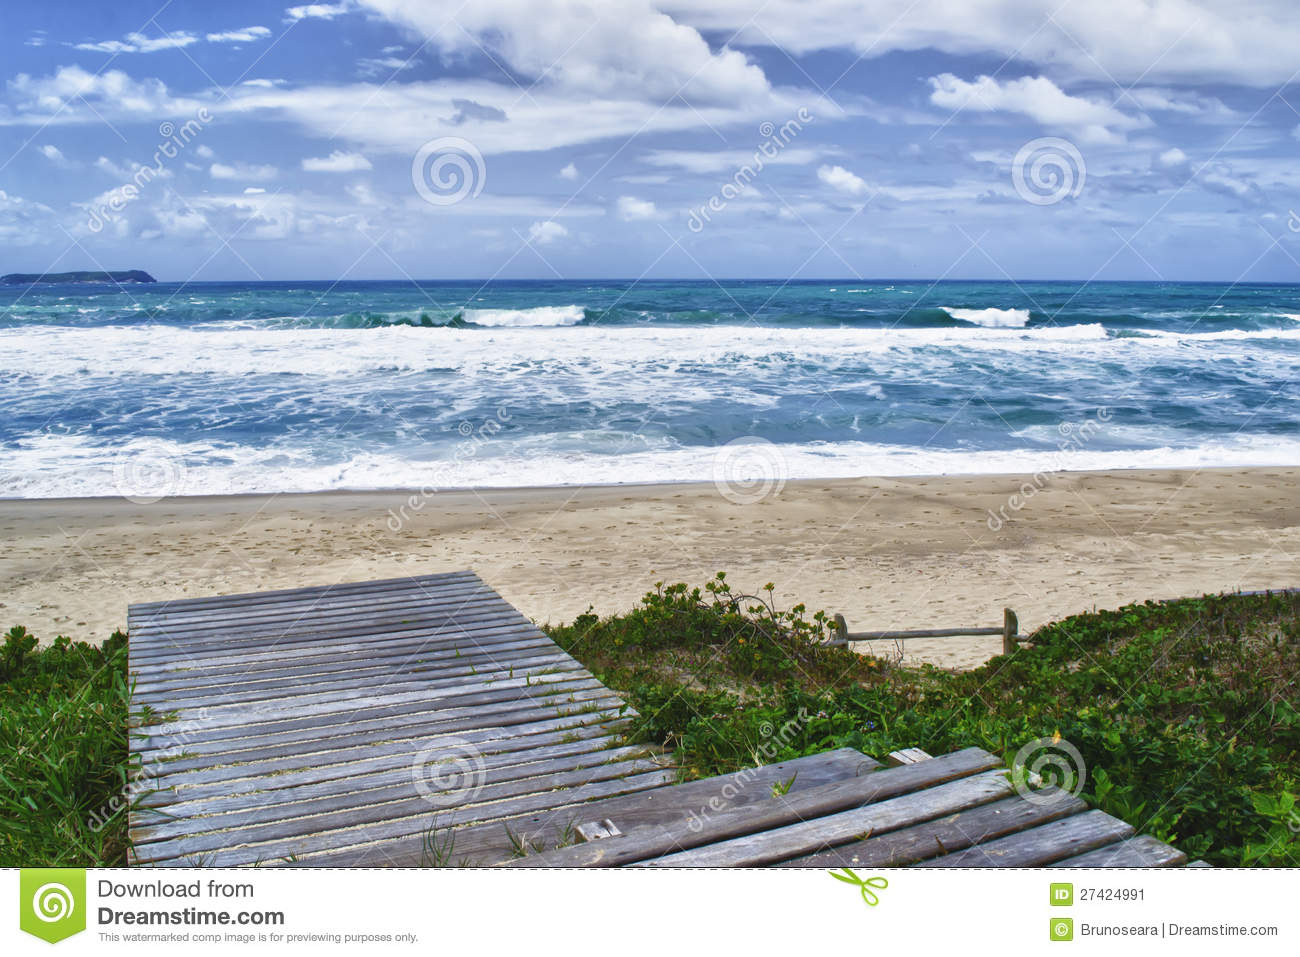 let 39 s go to the beach stock image image of brazil image 27424991. Black Bedroom Furniture Sets. Home Design Ideas